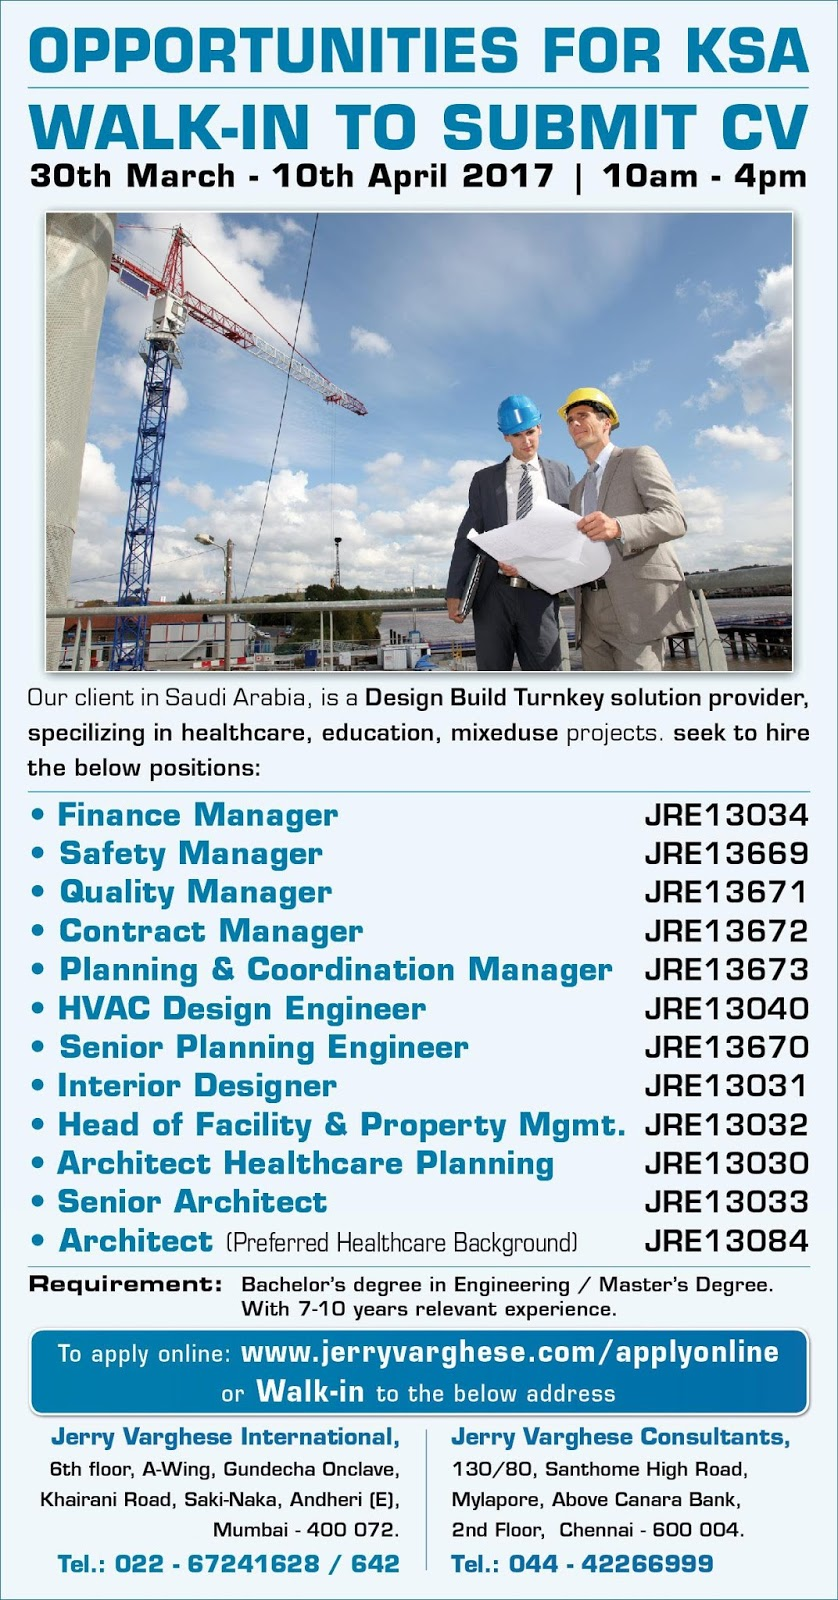 Walkin Drive For Engineer In Jerry Varghese One Of The Leading Players World Recruitment Solutions Is Poised As A Thought Leader Market